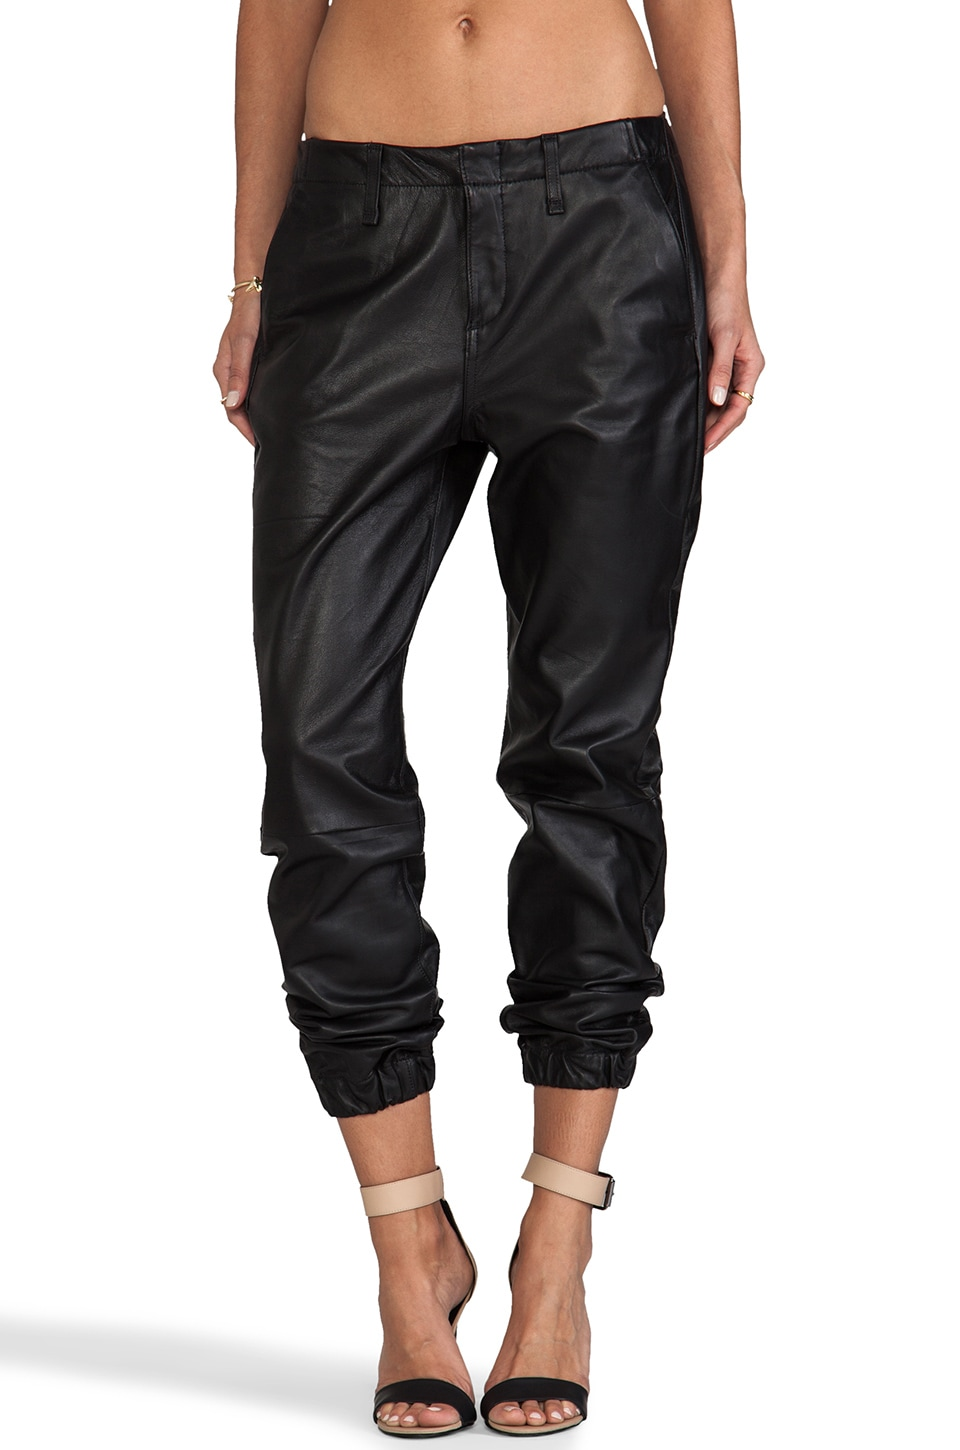 rag & bone/JEAN Pajama Pant in Black Leather